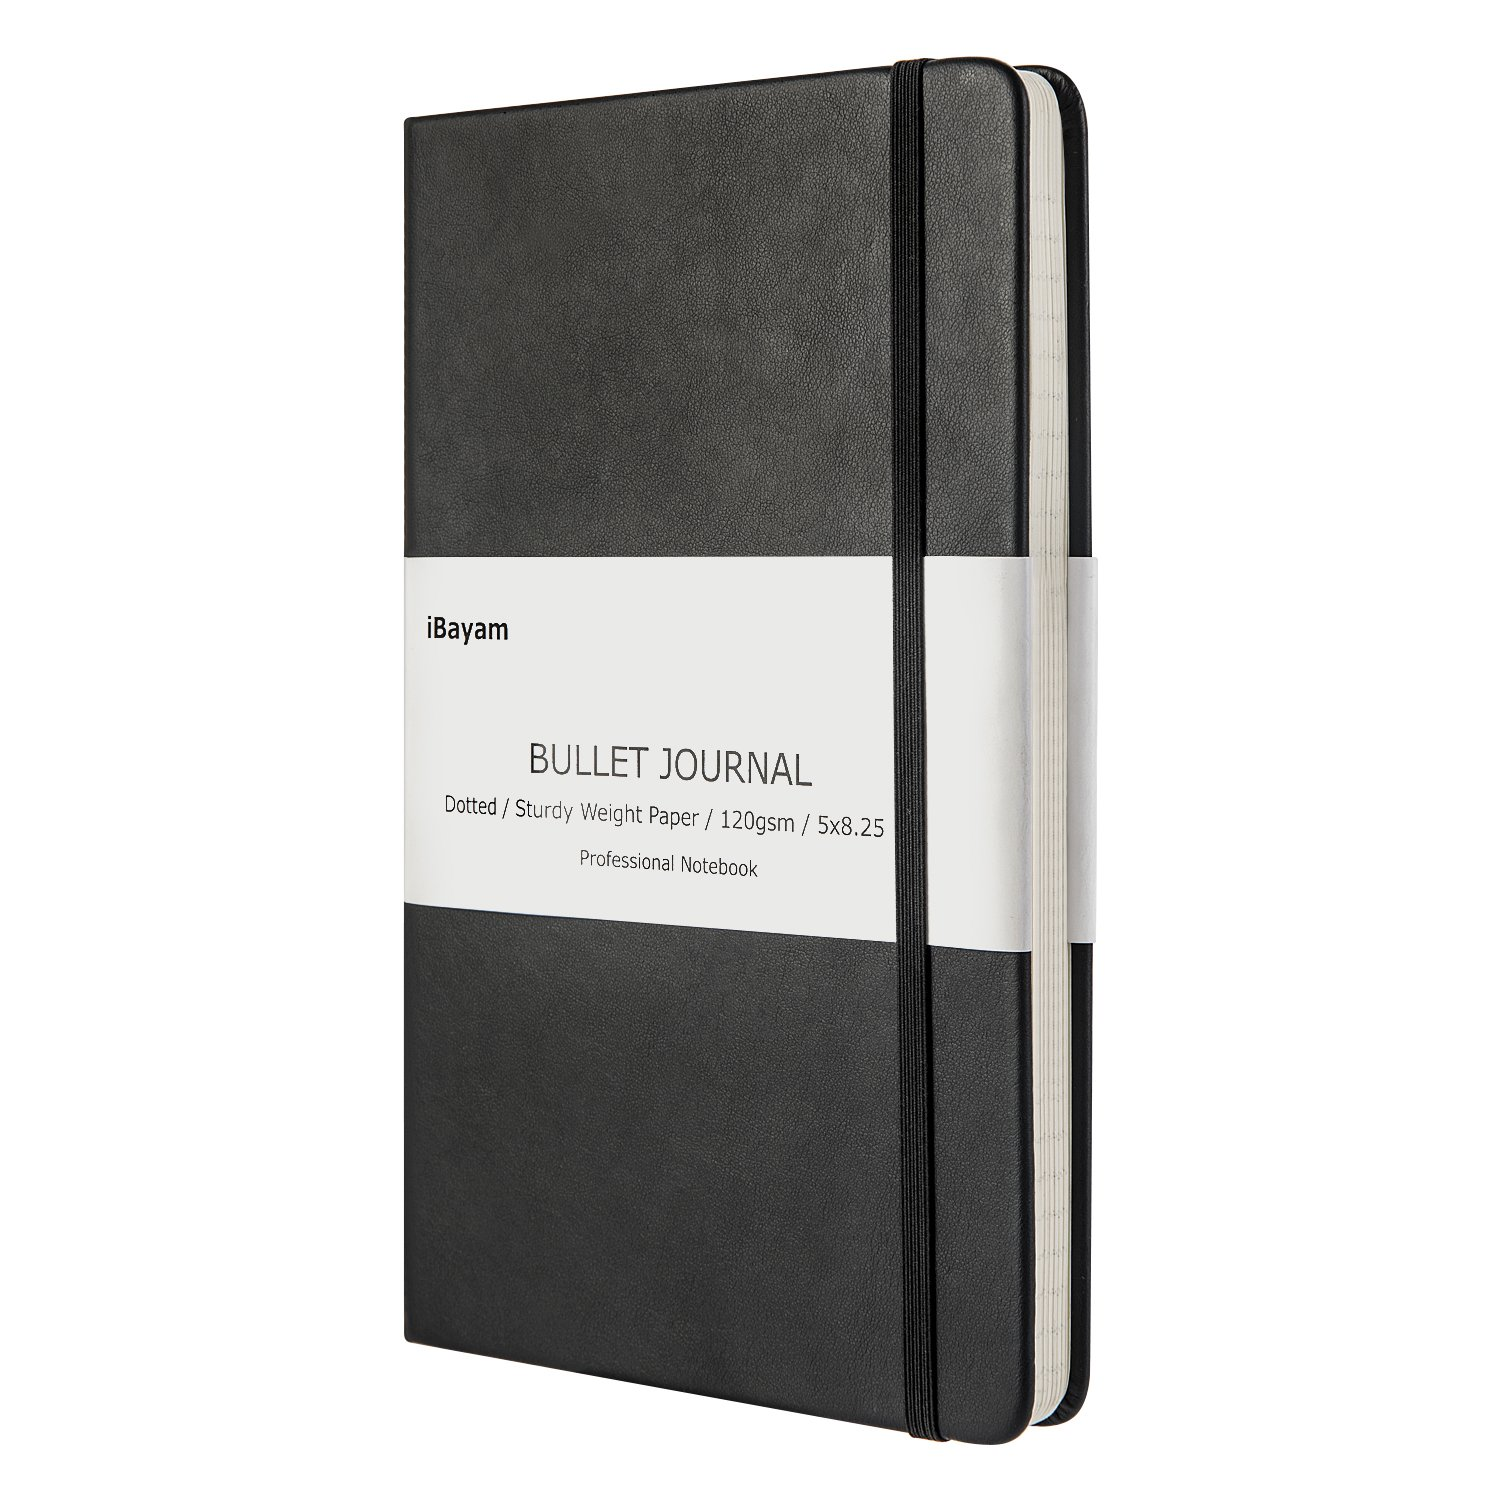 Bullet Journal, Dot Grid Hard Cover Notebook, 120gsm Premium THICK PAPER with Fine Inner Pocket, Classic Black Smooth Faux Leather, A5 size(5''x 8.25'') for School & Office Supplies